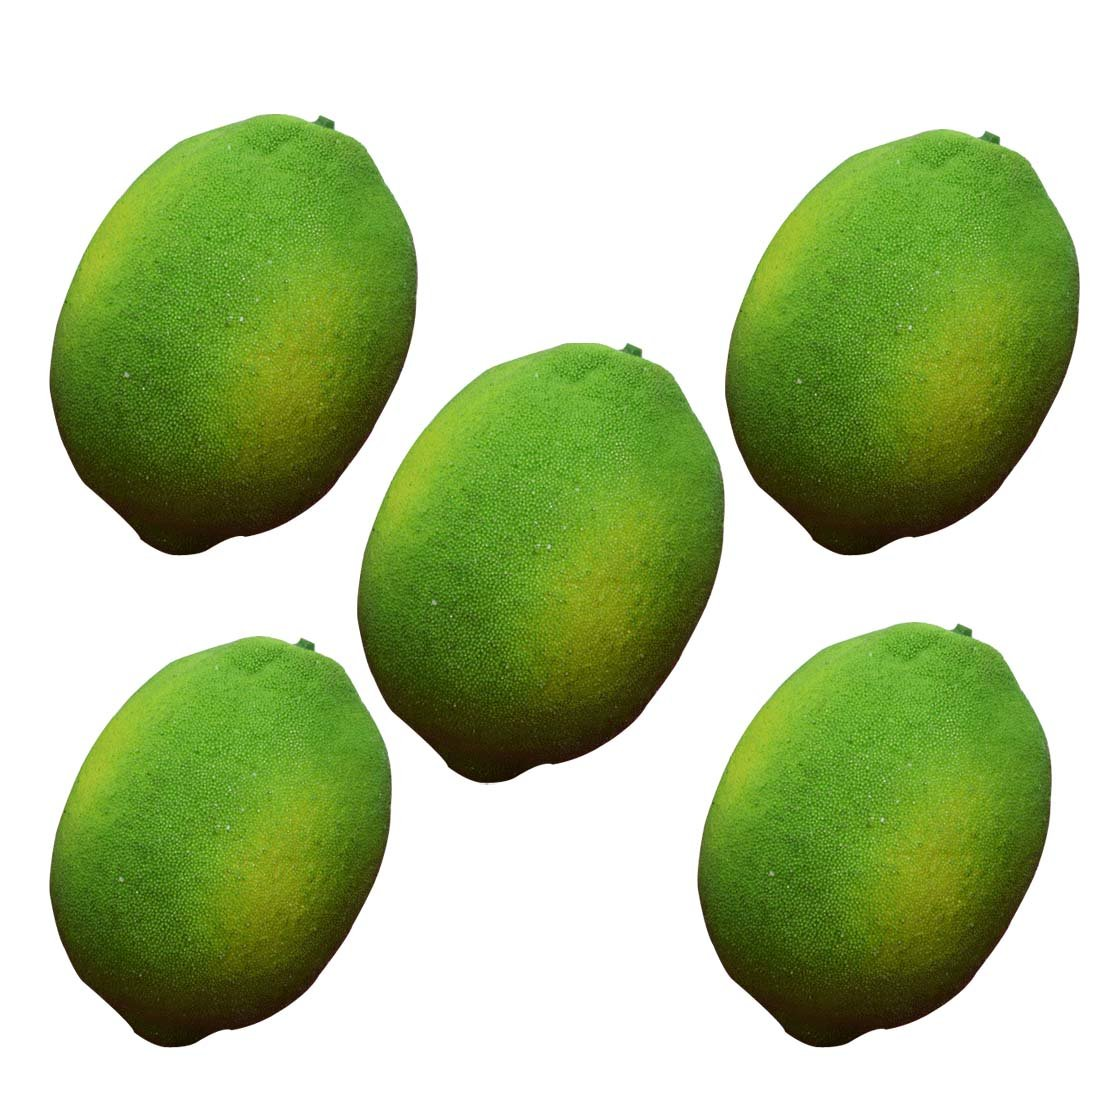 Artificial Limes Lifelike Fake Green Lemon Simulation Fruits For Home Kitchen Decoration 5pcs Lorigun